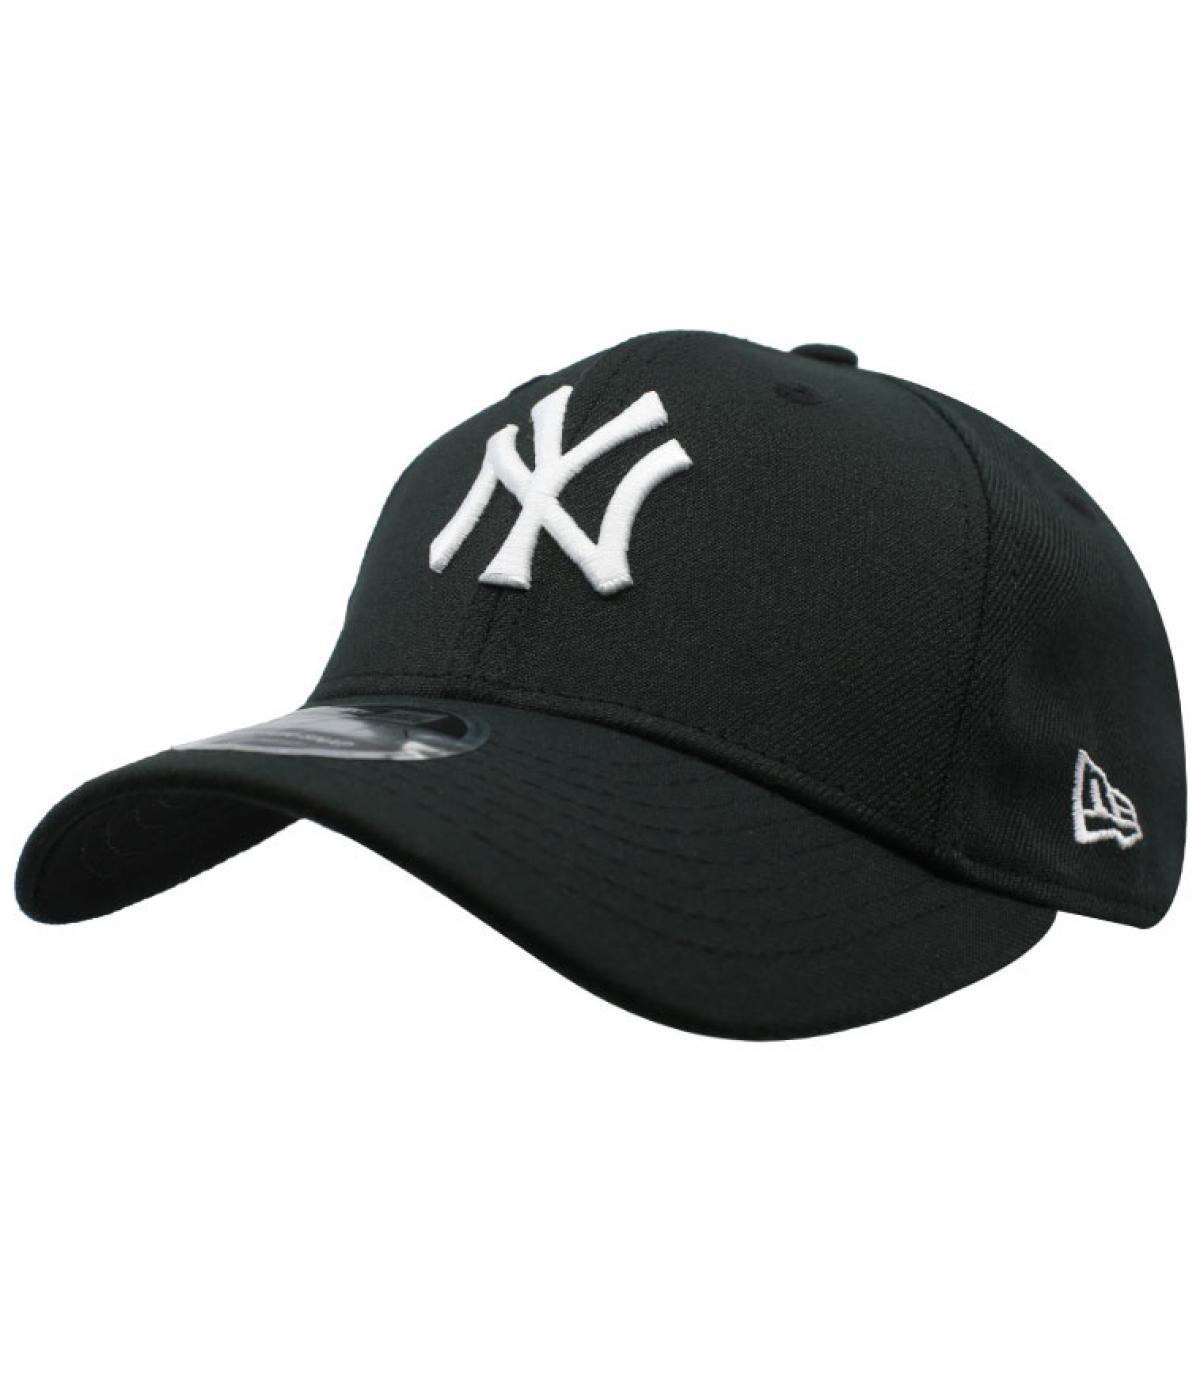 Details Stretch Snap NY 9Fifty - afbeeling 1